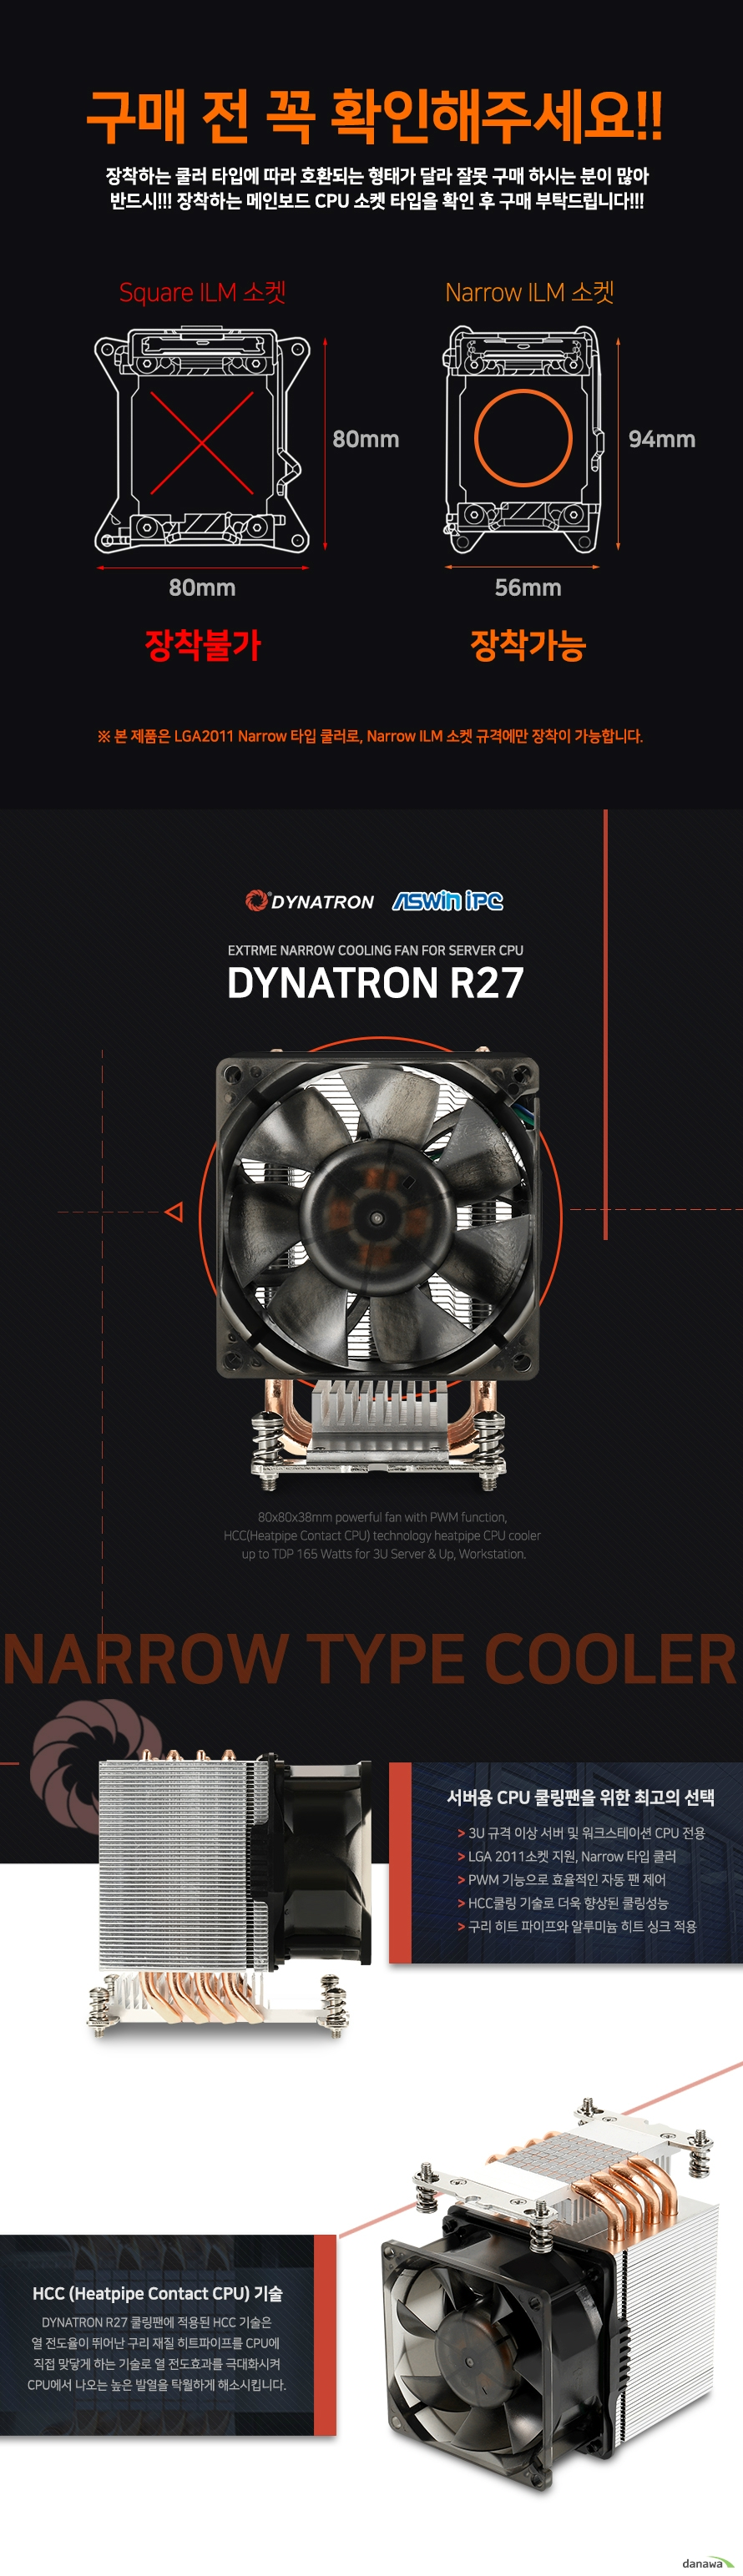 DYNATRON R27 익스트림 내로우 쿨링팬   SPECIFICATION          CPU SUPPORT     INTEL RECOMMAND FOR INTEL XEON E5 2600 AND 4600 SERIES          CPU SOCKET     LGA 2011 NARROW TYPE 56MM 95MM MOUNTING PITCH          SOLUTION     3U SERVER AND UP WORKSTATION          DIMENSIONS 112 82 110MM          WEIGHT 550G +- 5G          MATERIAL          ALUMINUM FINS AND 4 HEAT PIPES WITH HCC TECHNOLOGY          FAN DIMENSION 80 80 38MM          FAN SPEED          AT DUTY CYCLE 20% 1000+-10% RPM     AT DUTY CYCLE 50% 2000+-10% RPM     AT DUTY CYCLE 100% 3800 RPM          BEARING TYPE 2 BALL BEARING          RATED VOLTAGE 12V          INPUT POWER          AT DUTY CYCLE 20% 2.2 WATTS     AT DUTY CYCLE 50% 3.6 WATTS     AT DUTY CYCLE 100% 7.9 WATTS          AIR FLOW          AT DUTY CYCLE 20% 13.8 CFM     AT DUTY CYCLE 50% 30.78 CFM     AT DUTY CYCLE 100% 65.4 CFM          NOISE LEVEL          AT DUTY CYCLE 20% 16 DBA     AT DUTY CYCLE 50% 31.5 DBA     AT DUTY CYCLE 100% 43.4 DBA          AIR PRESSURE          AT DUTY CYCLE 20% 0.42MM H2O     AT DUTY CYCLE 50% 2.45MM H2O     AT DUTY CYCLE 100% 9.75MM H2O          THERMAL GREASE SHIN ETSU G751 PRE PRINTED          WARRANTY 1 YEAR WARRANTY